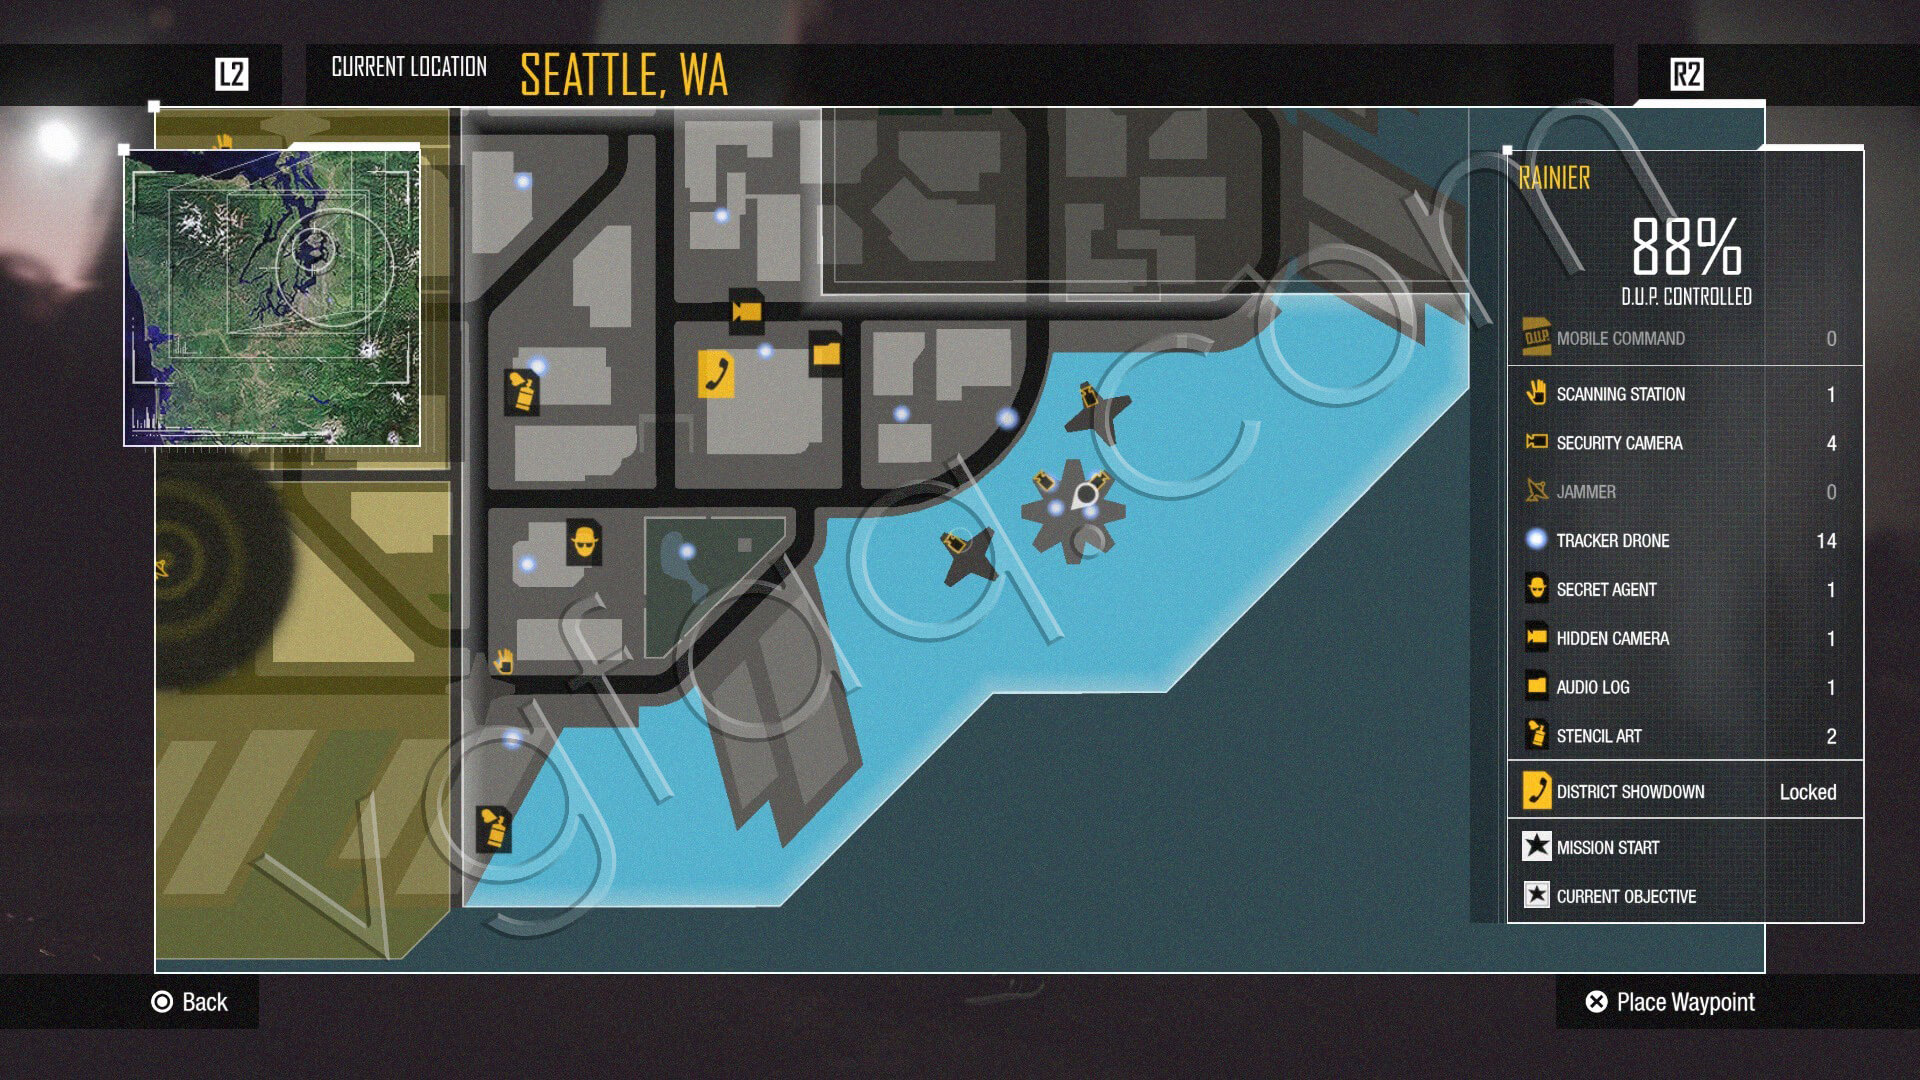 inFamous: Second Son Stencil Art Side Missions Guide - Video Games on uncharted 2 map, crash twinsanity map, everybody's gone to the rapture map, infamous second son map, forza 4 map, arkham city map, bound by flame map, infamous first light map, the witcher 3: wild hunt map, mortal kombat 2 map, crash bandicoot 2 map, grim dawn map, grandia 2 map, just cause 2 map, pac-man world 2 map, batman: arkham knight map, prototype 3 map, prototype 2 map, infamous festival of blood mary's teachings, grand theft auto: san andreas map,